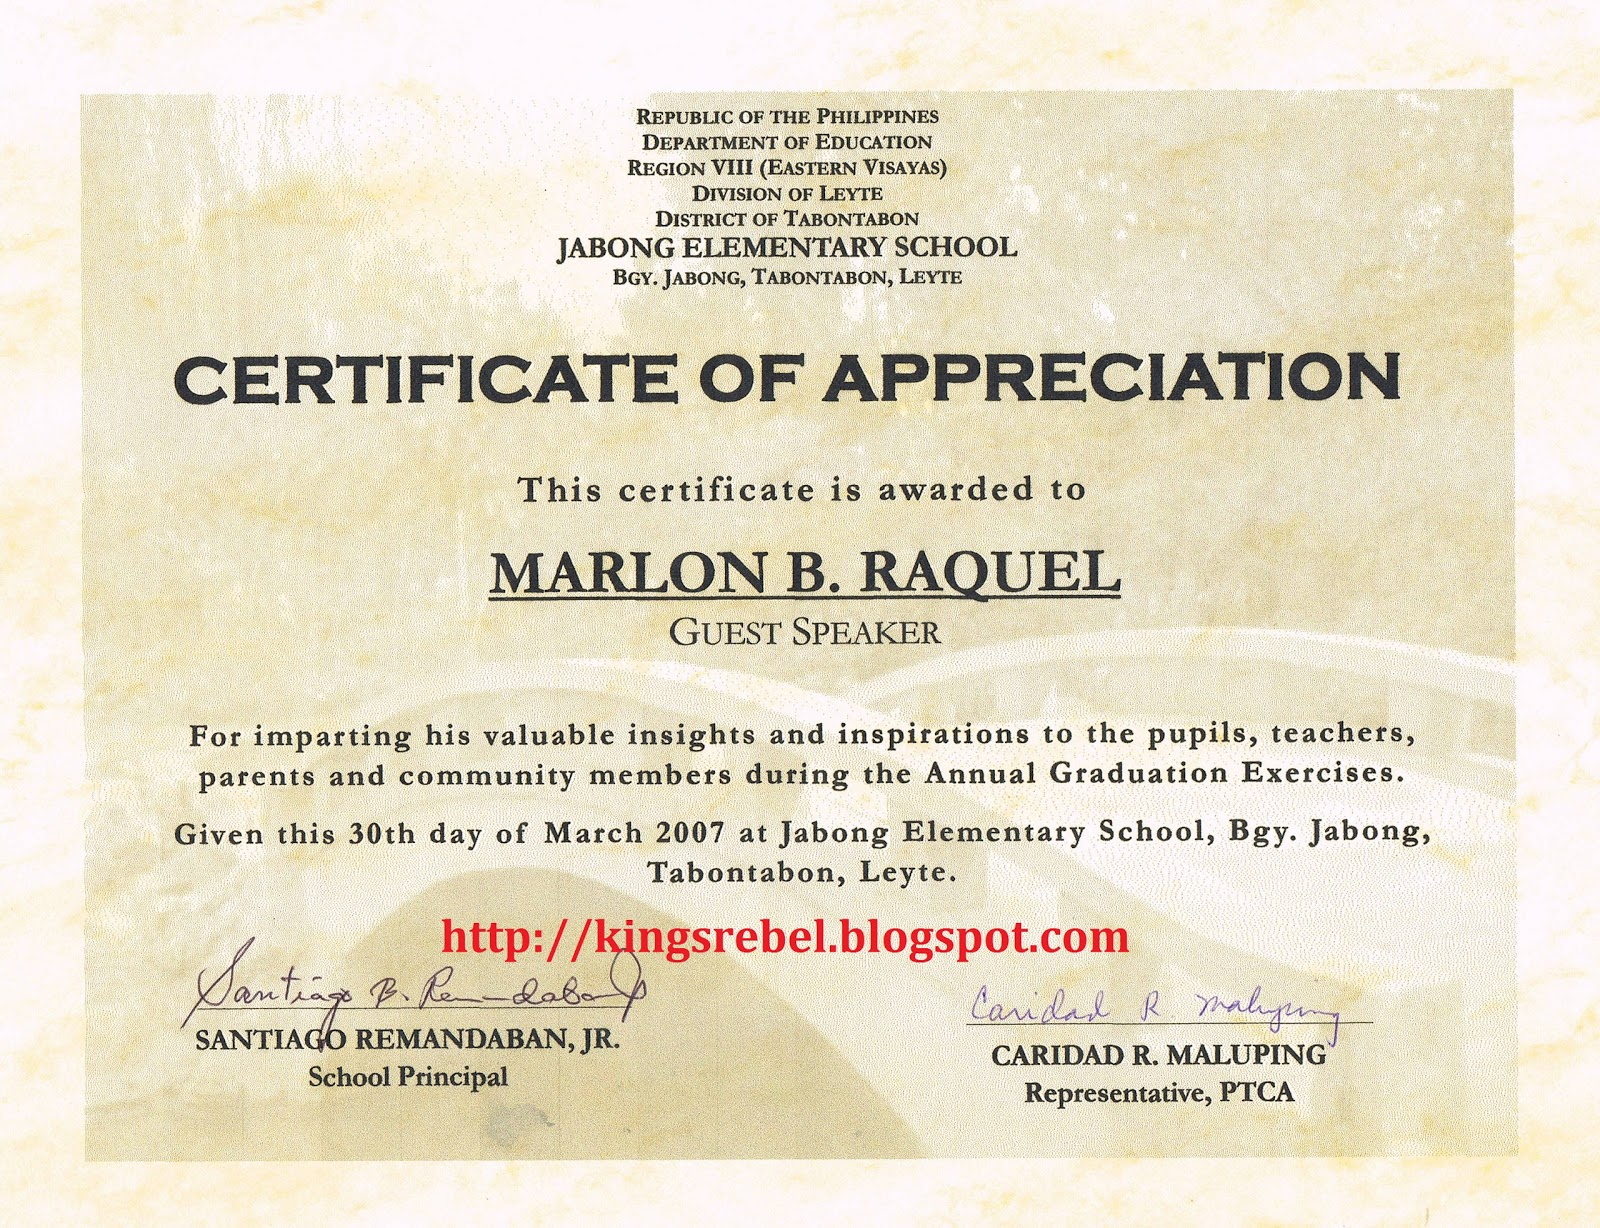 Certificate Of Appreciation For Speakers Sample Tidbits and bytes ...